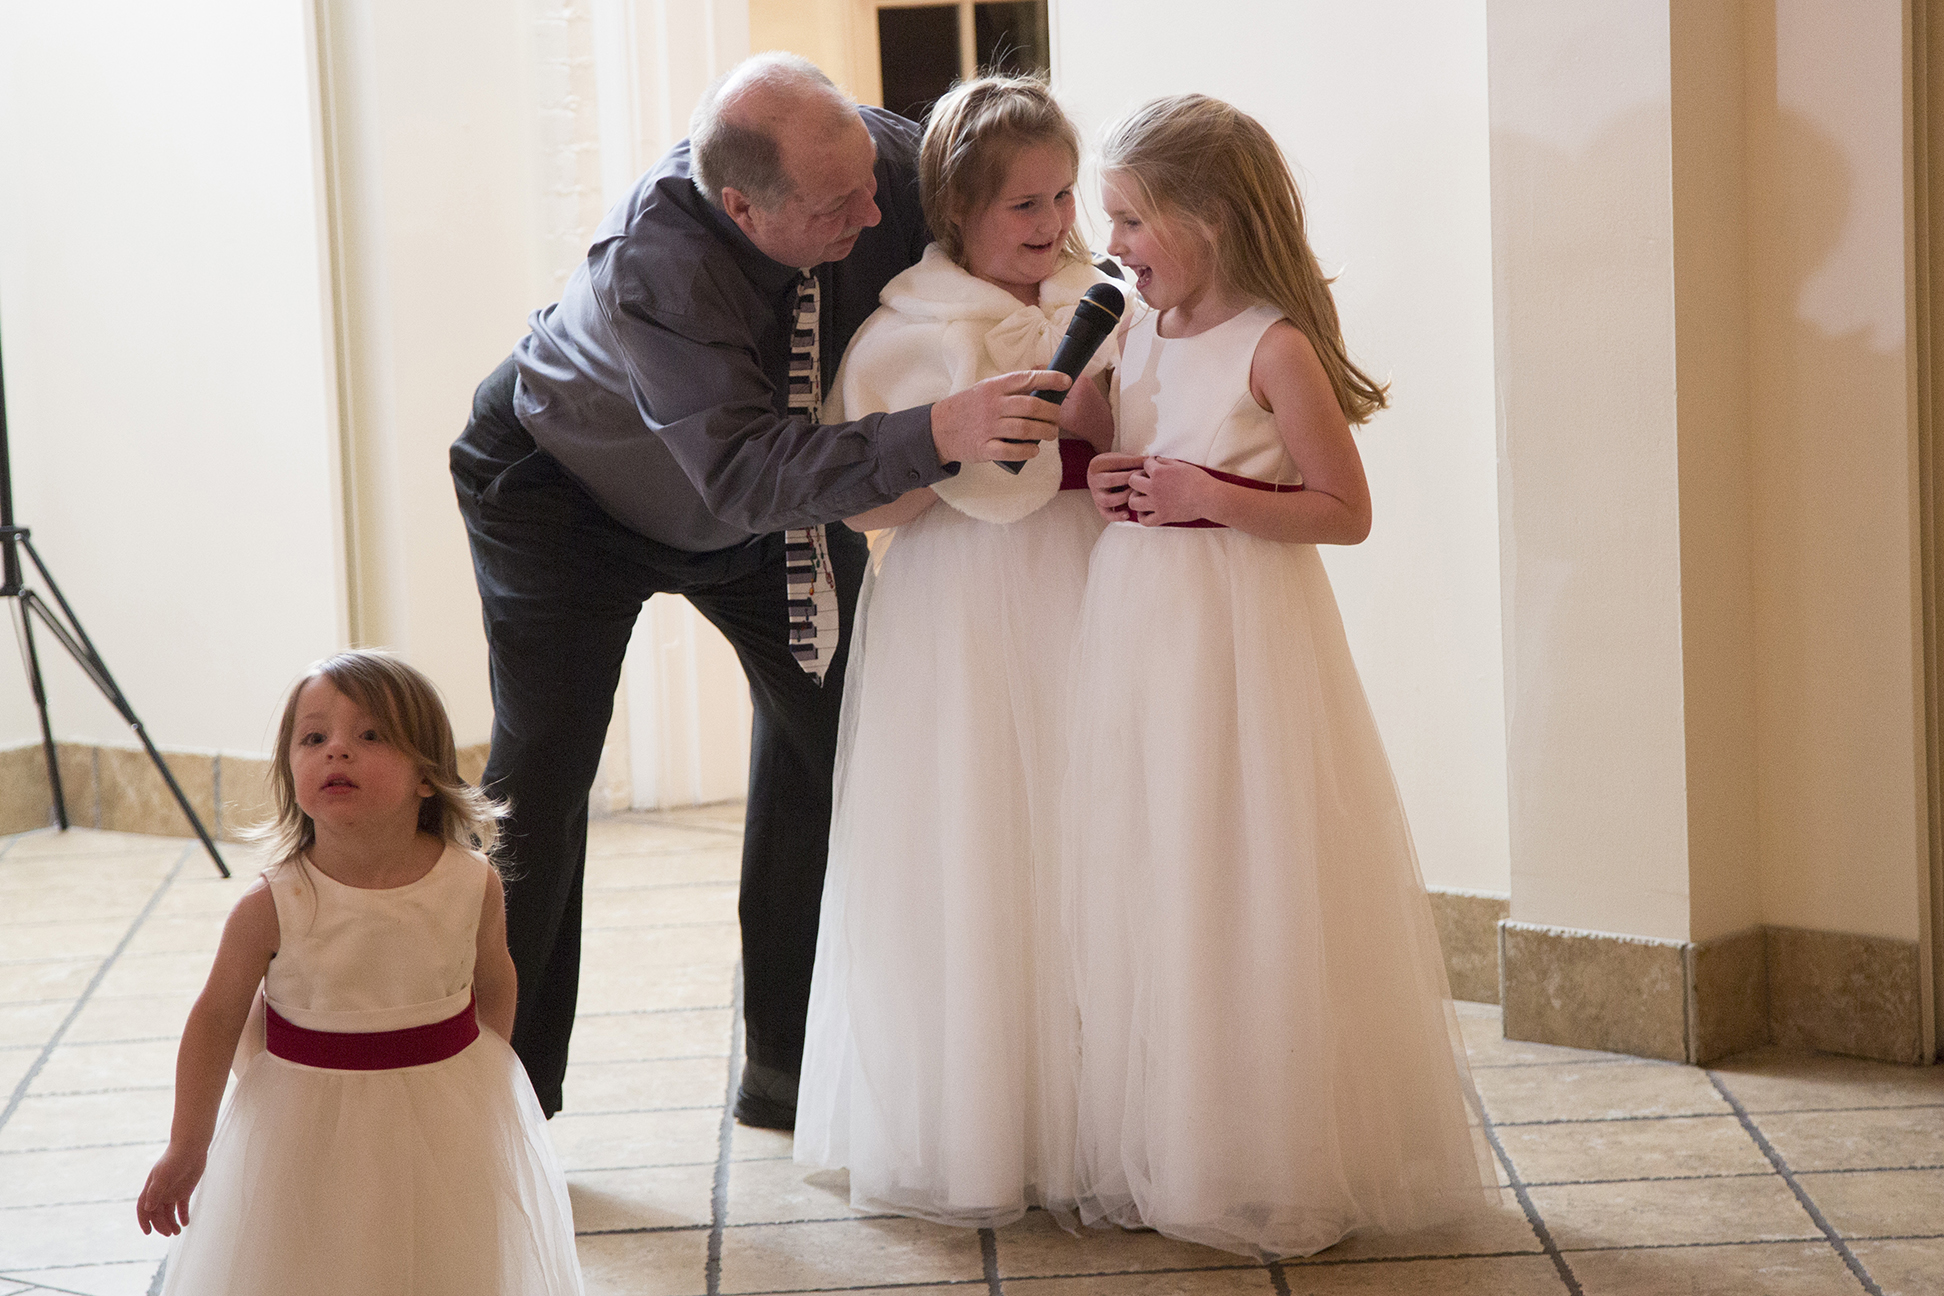 DJ letting flower girls sing into microphone